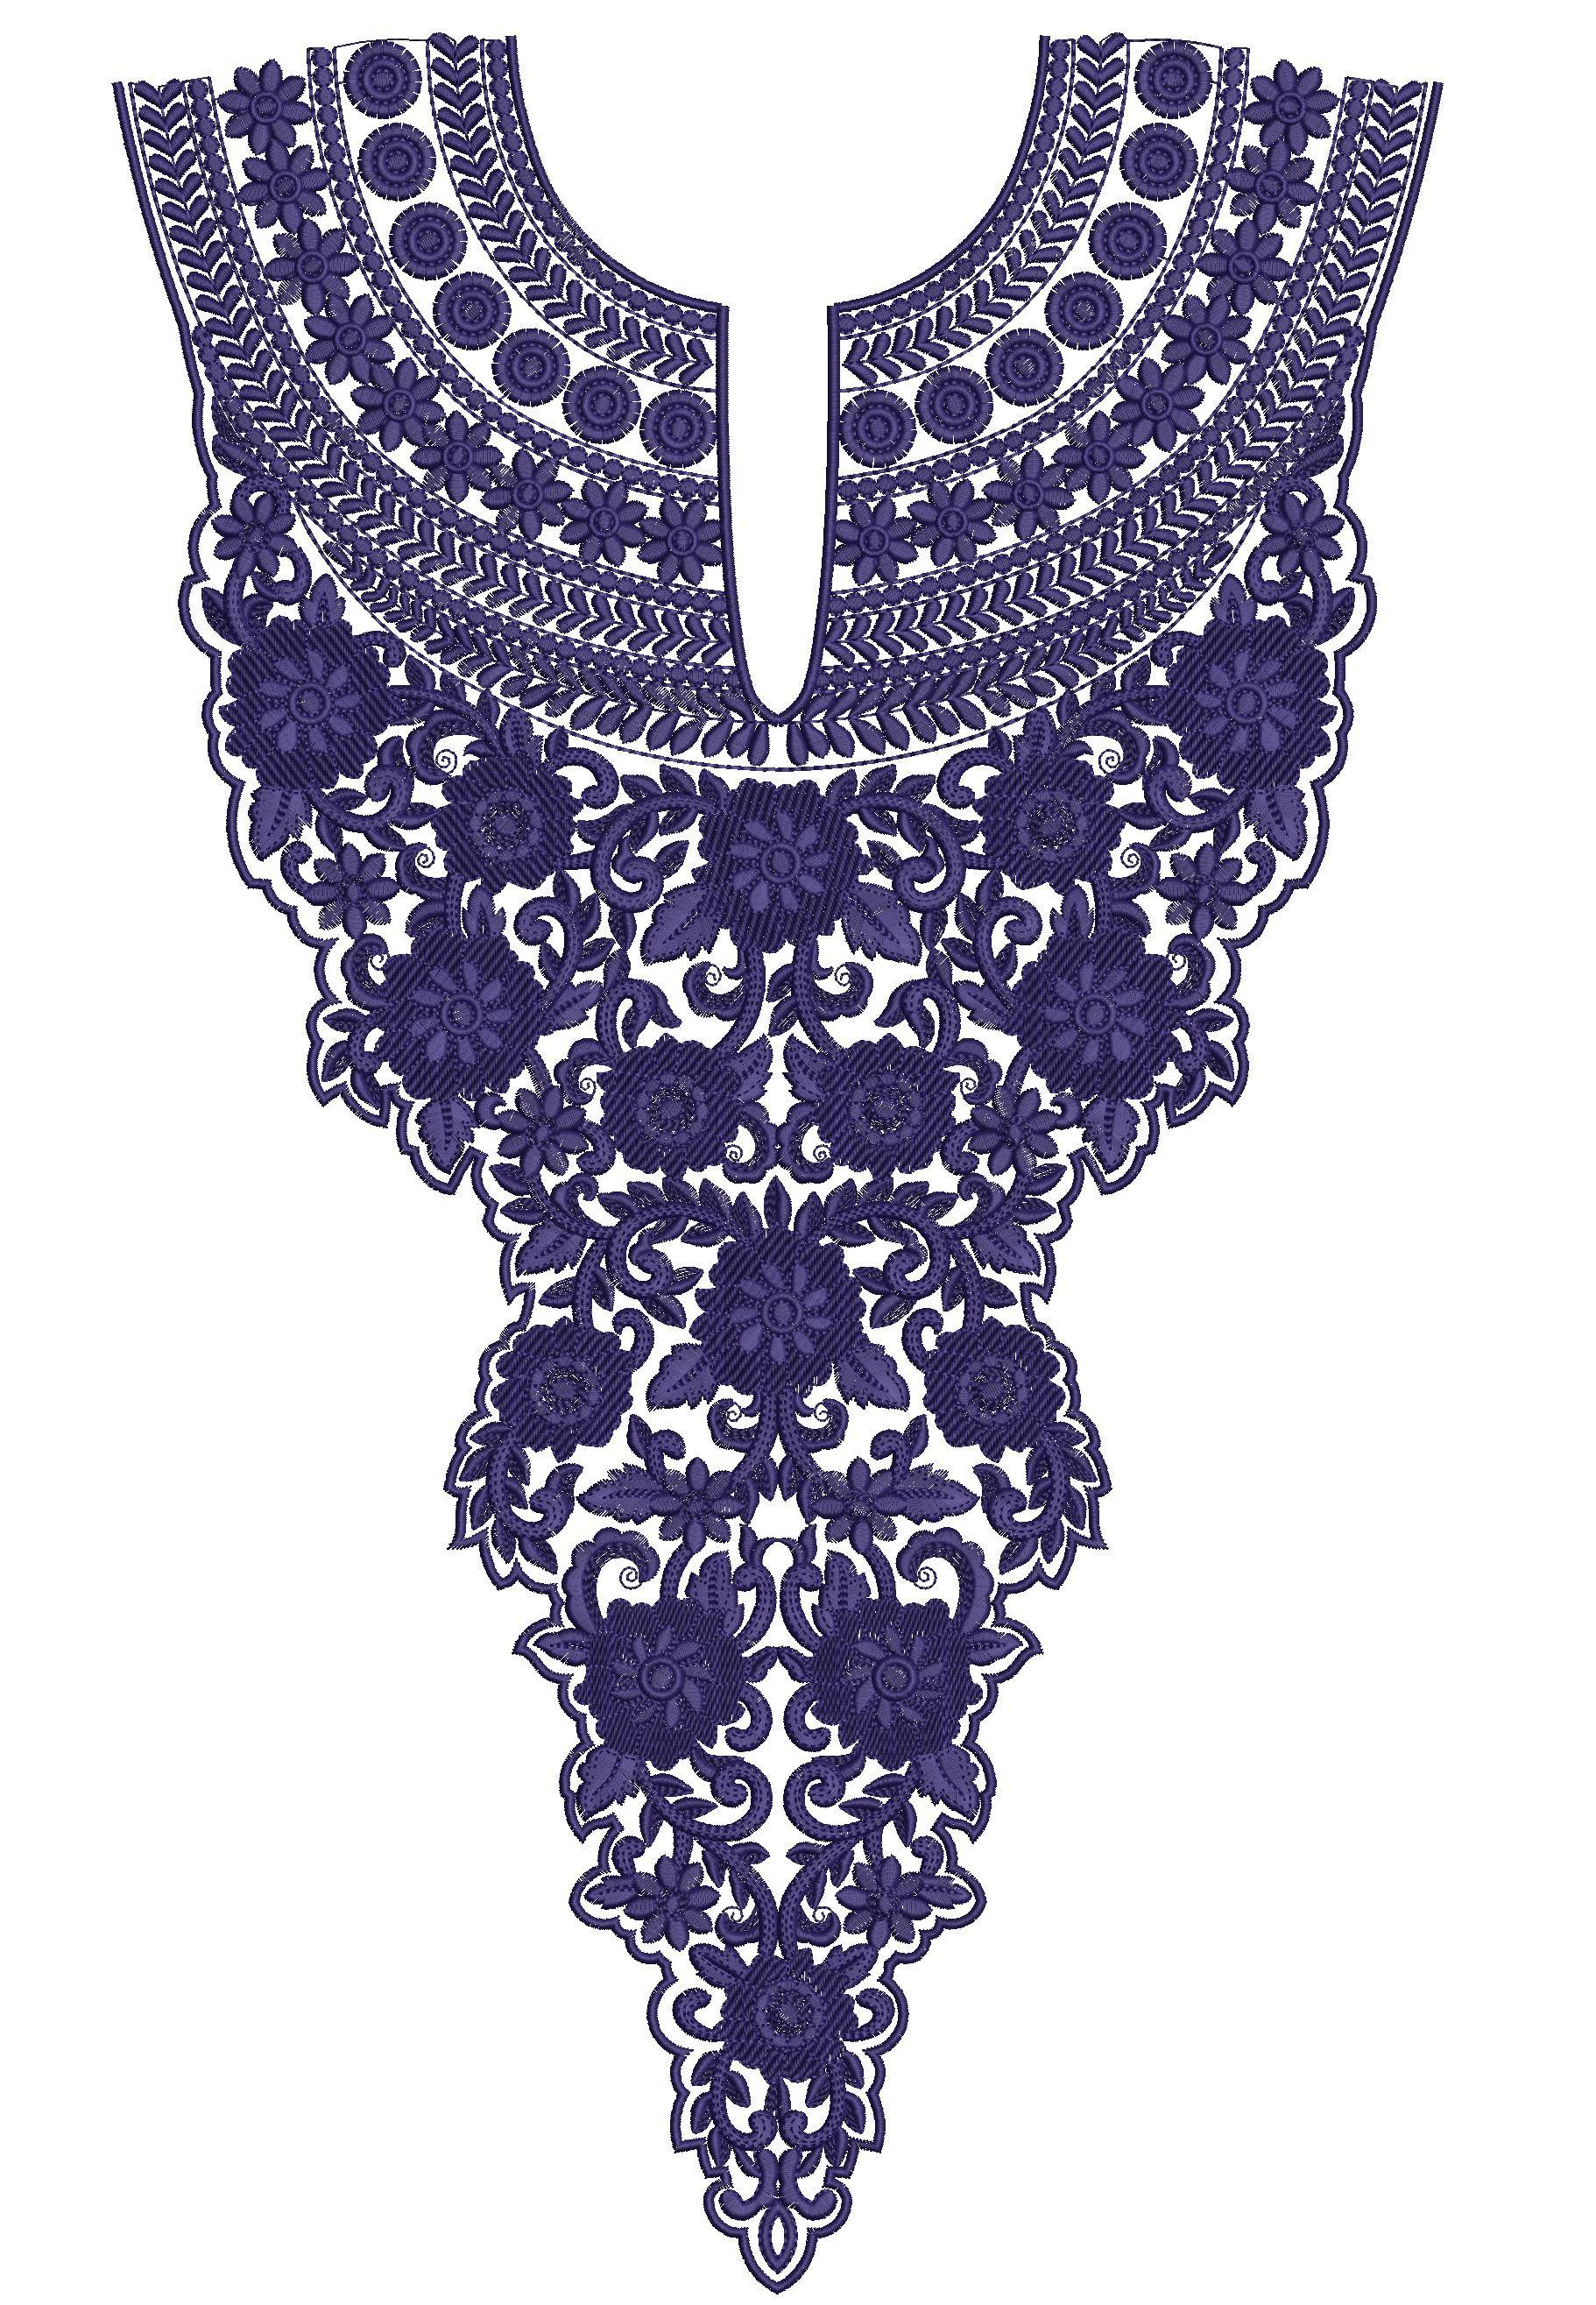 Neck embroidery designs imgkid the image kid